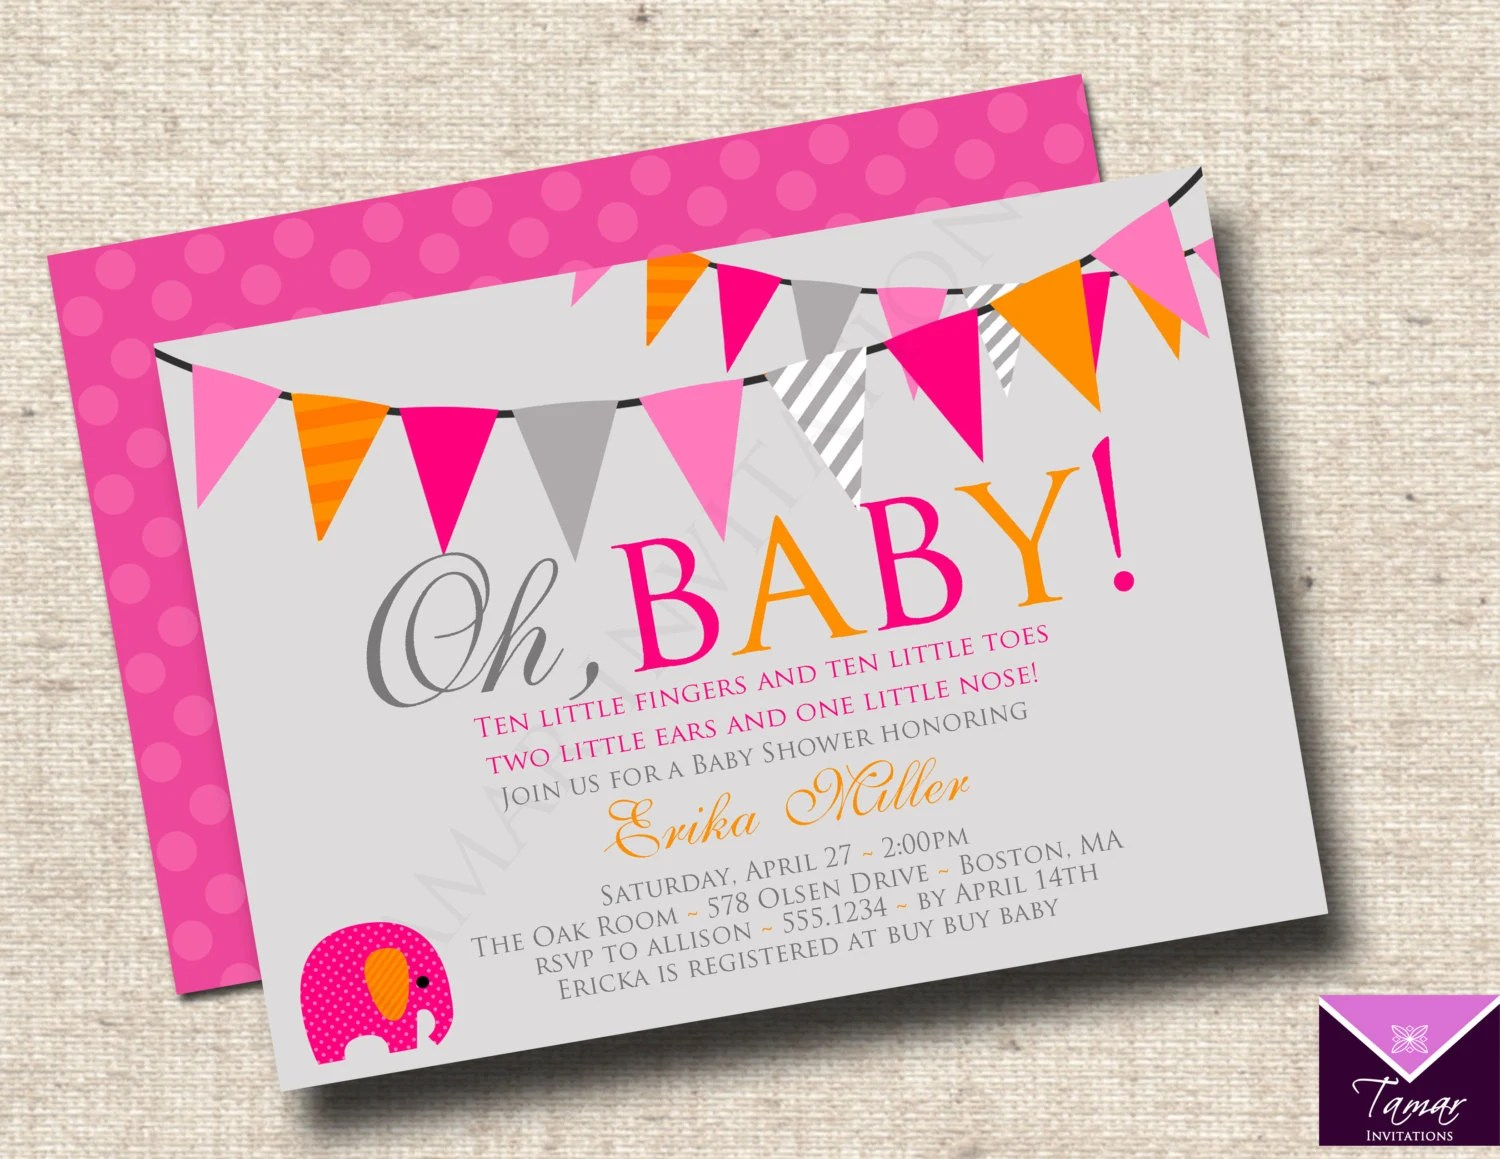 Printable OH BABY - Modern Baby Shower Invitations - Baby Boy or - Printable Baby Shower Invite